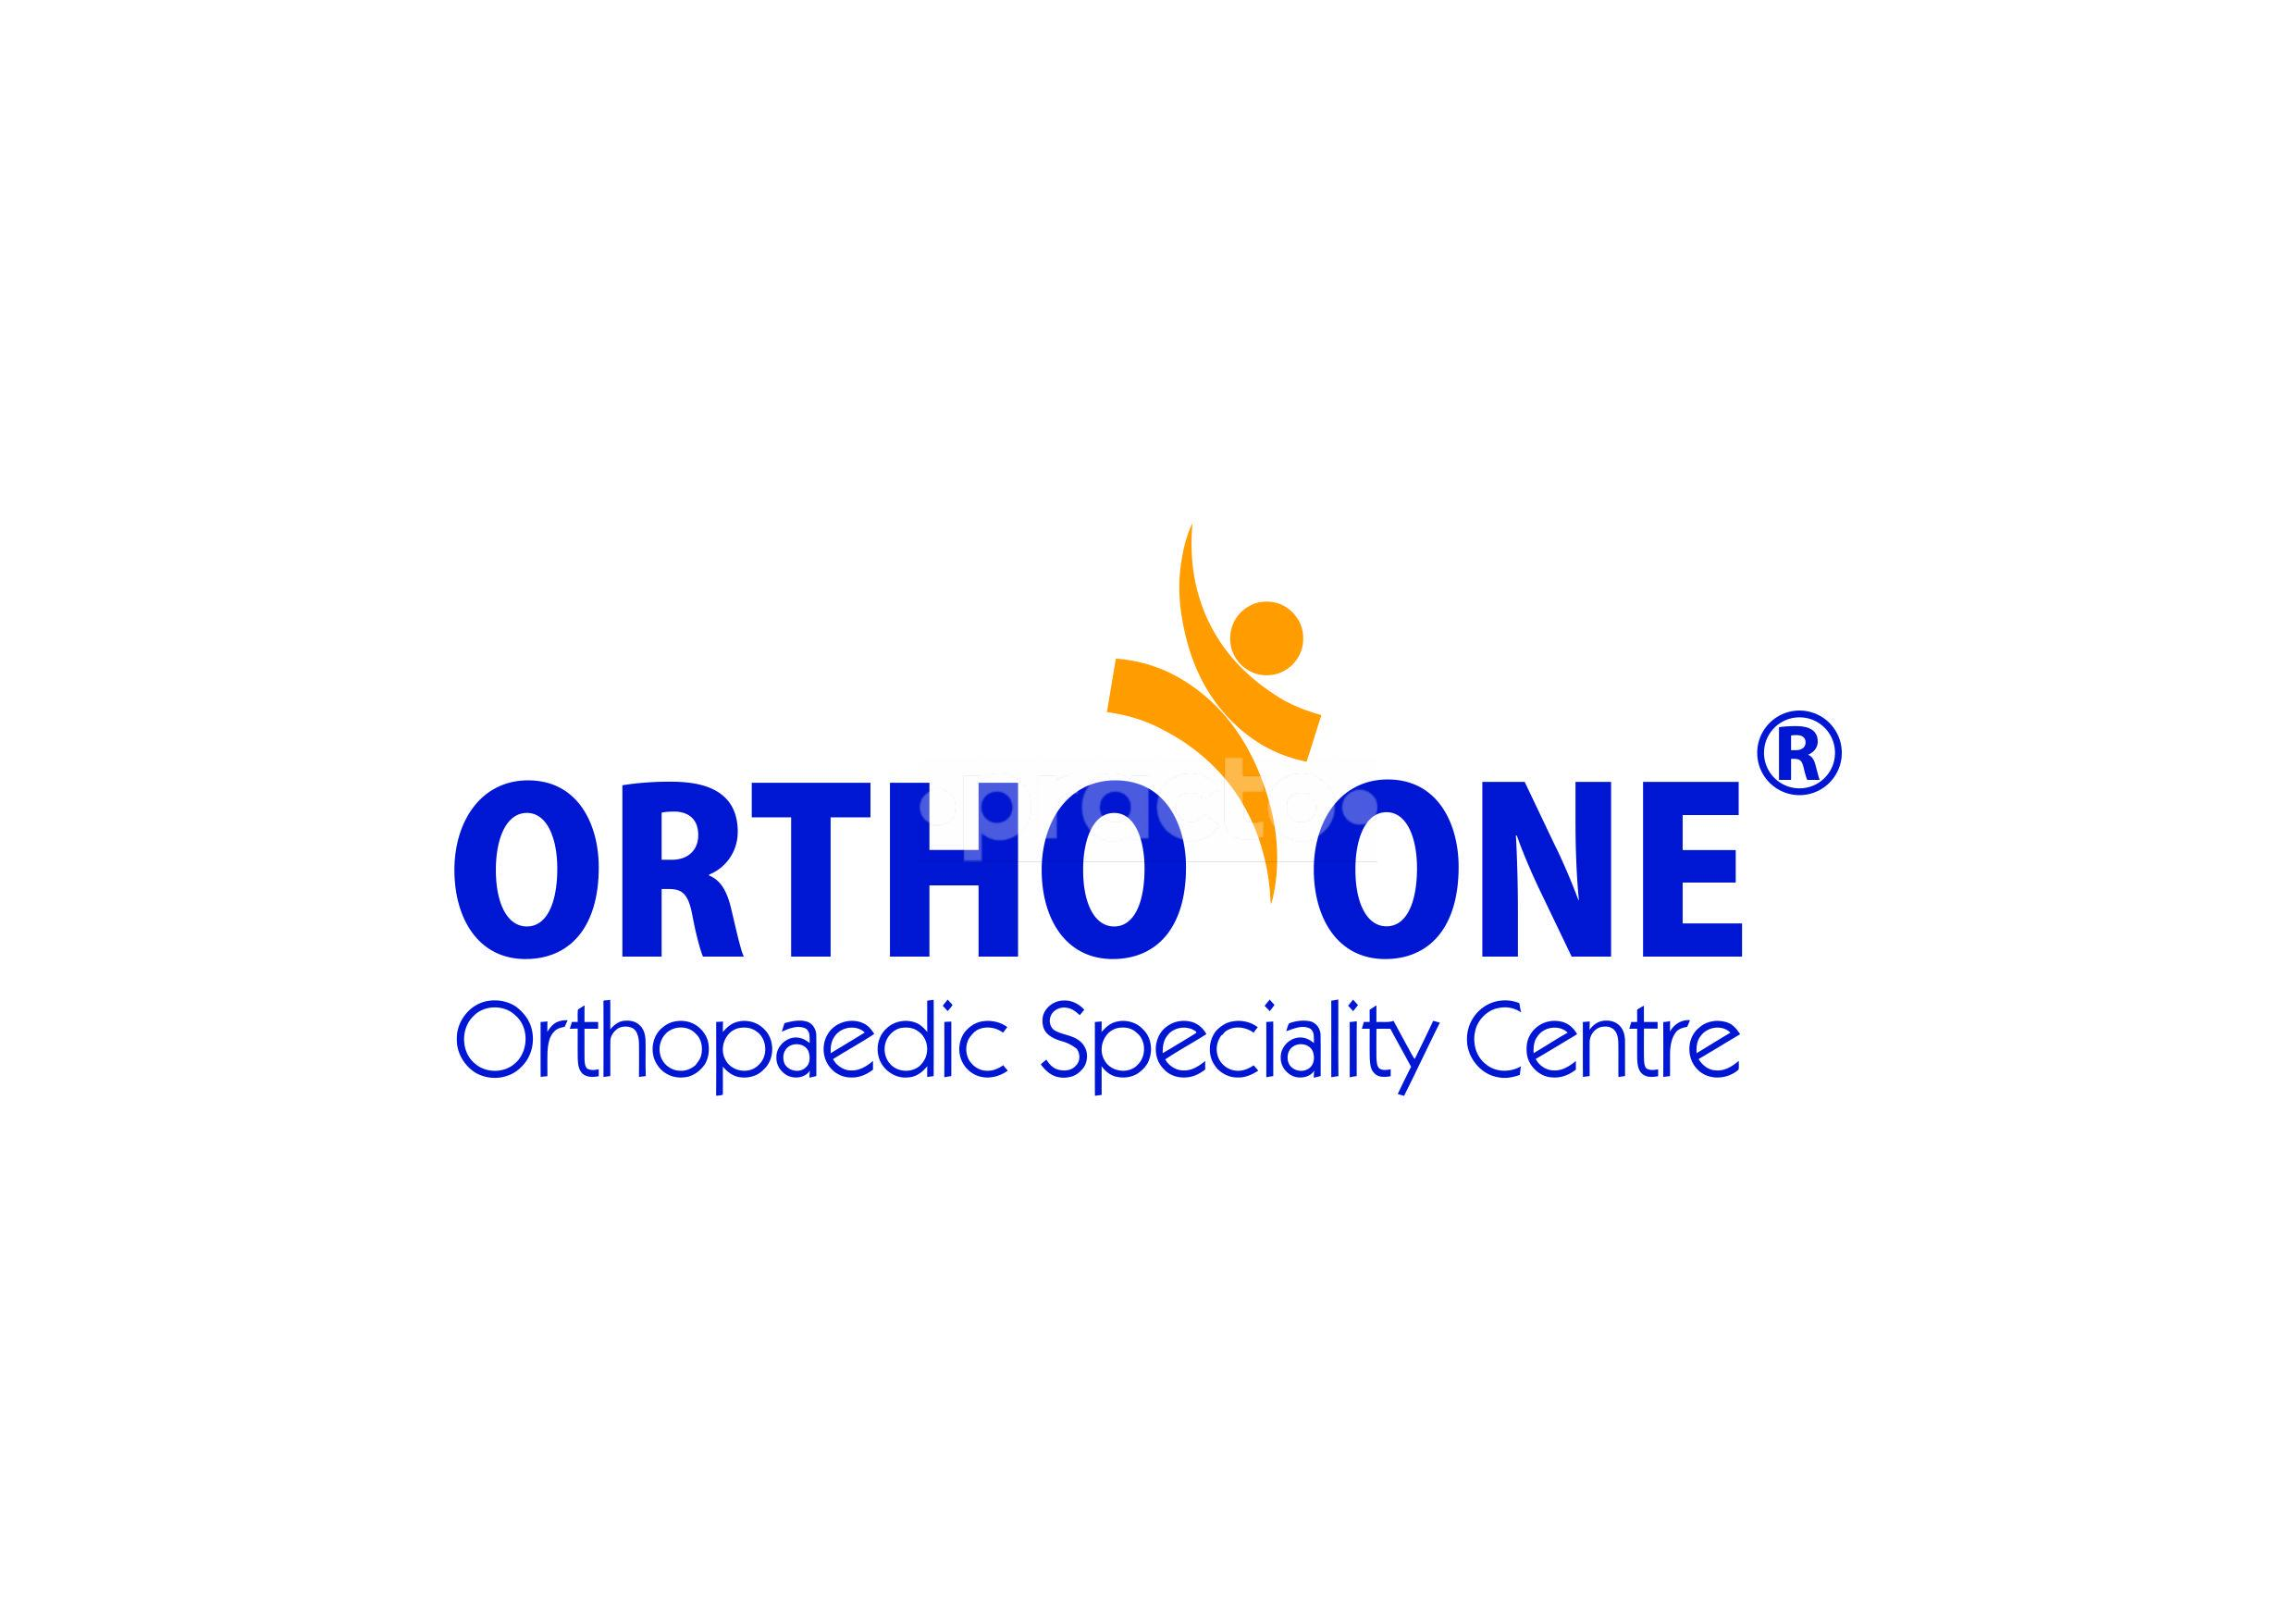 Ortho-One Orthopaedic Speciality Centre